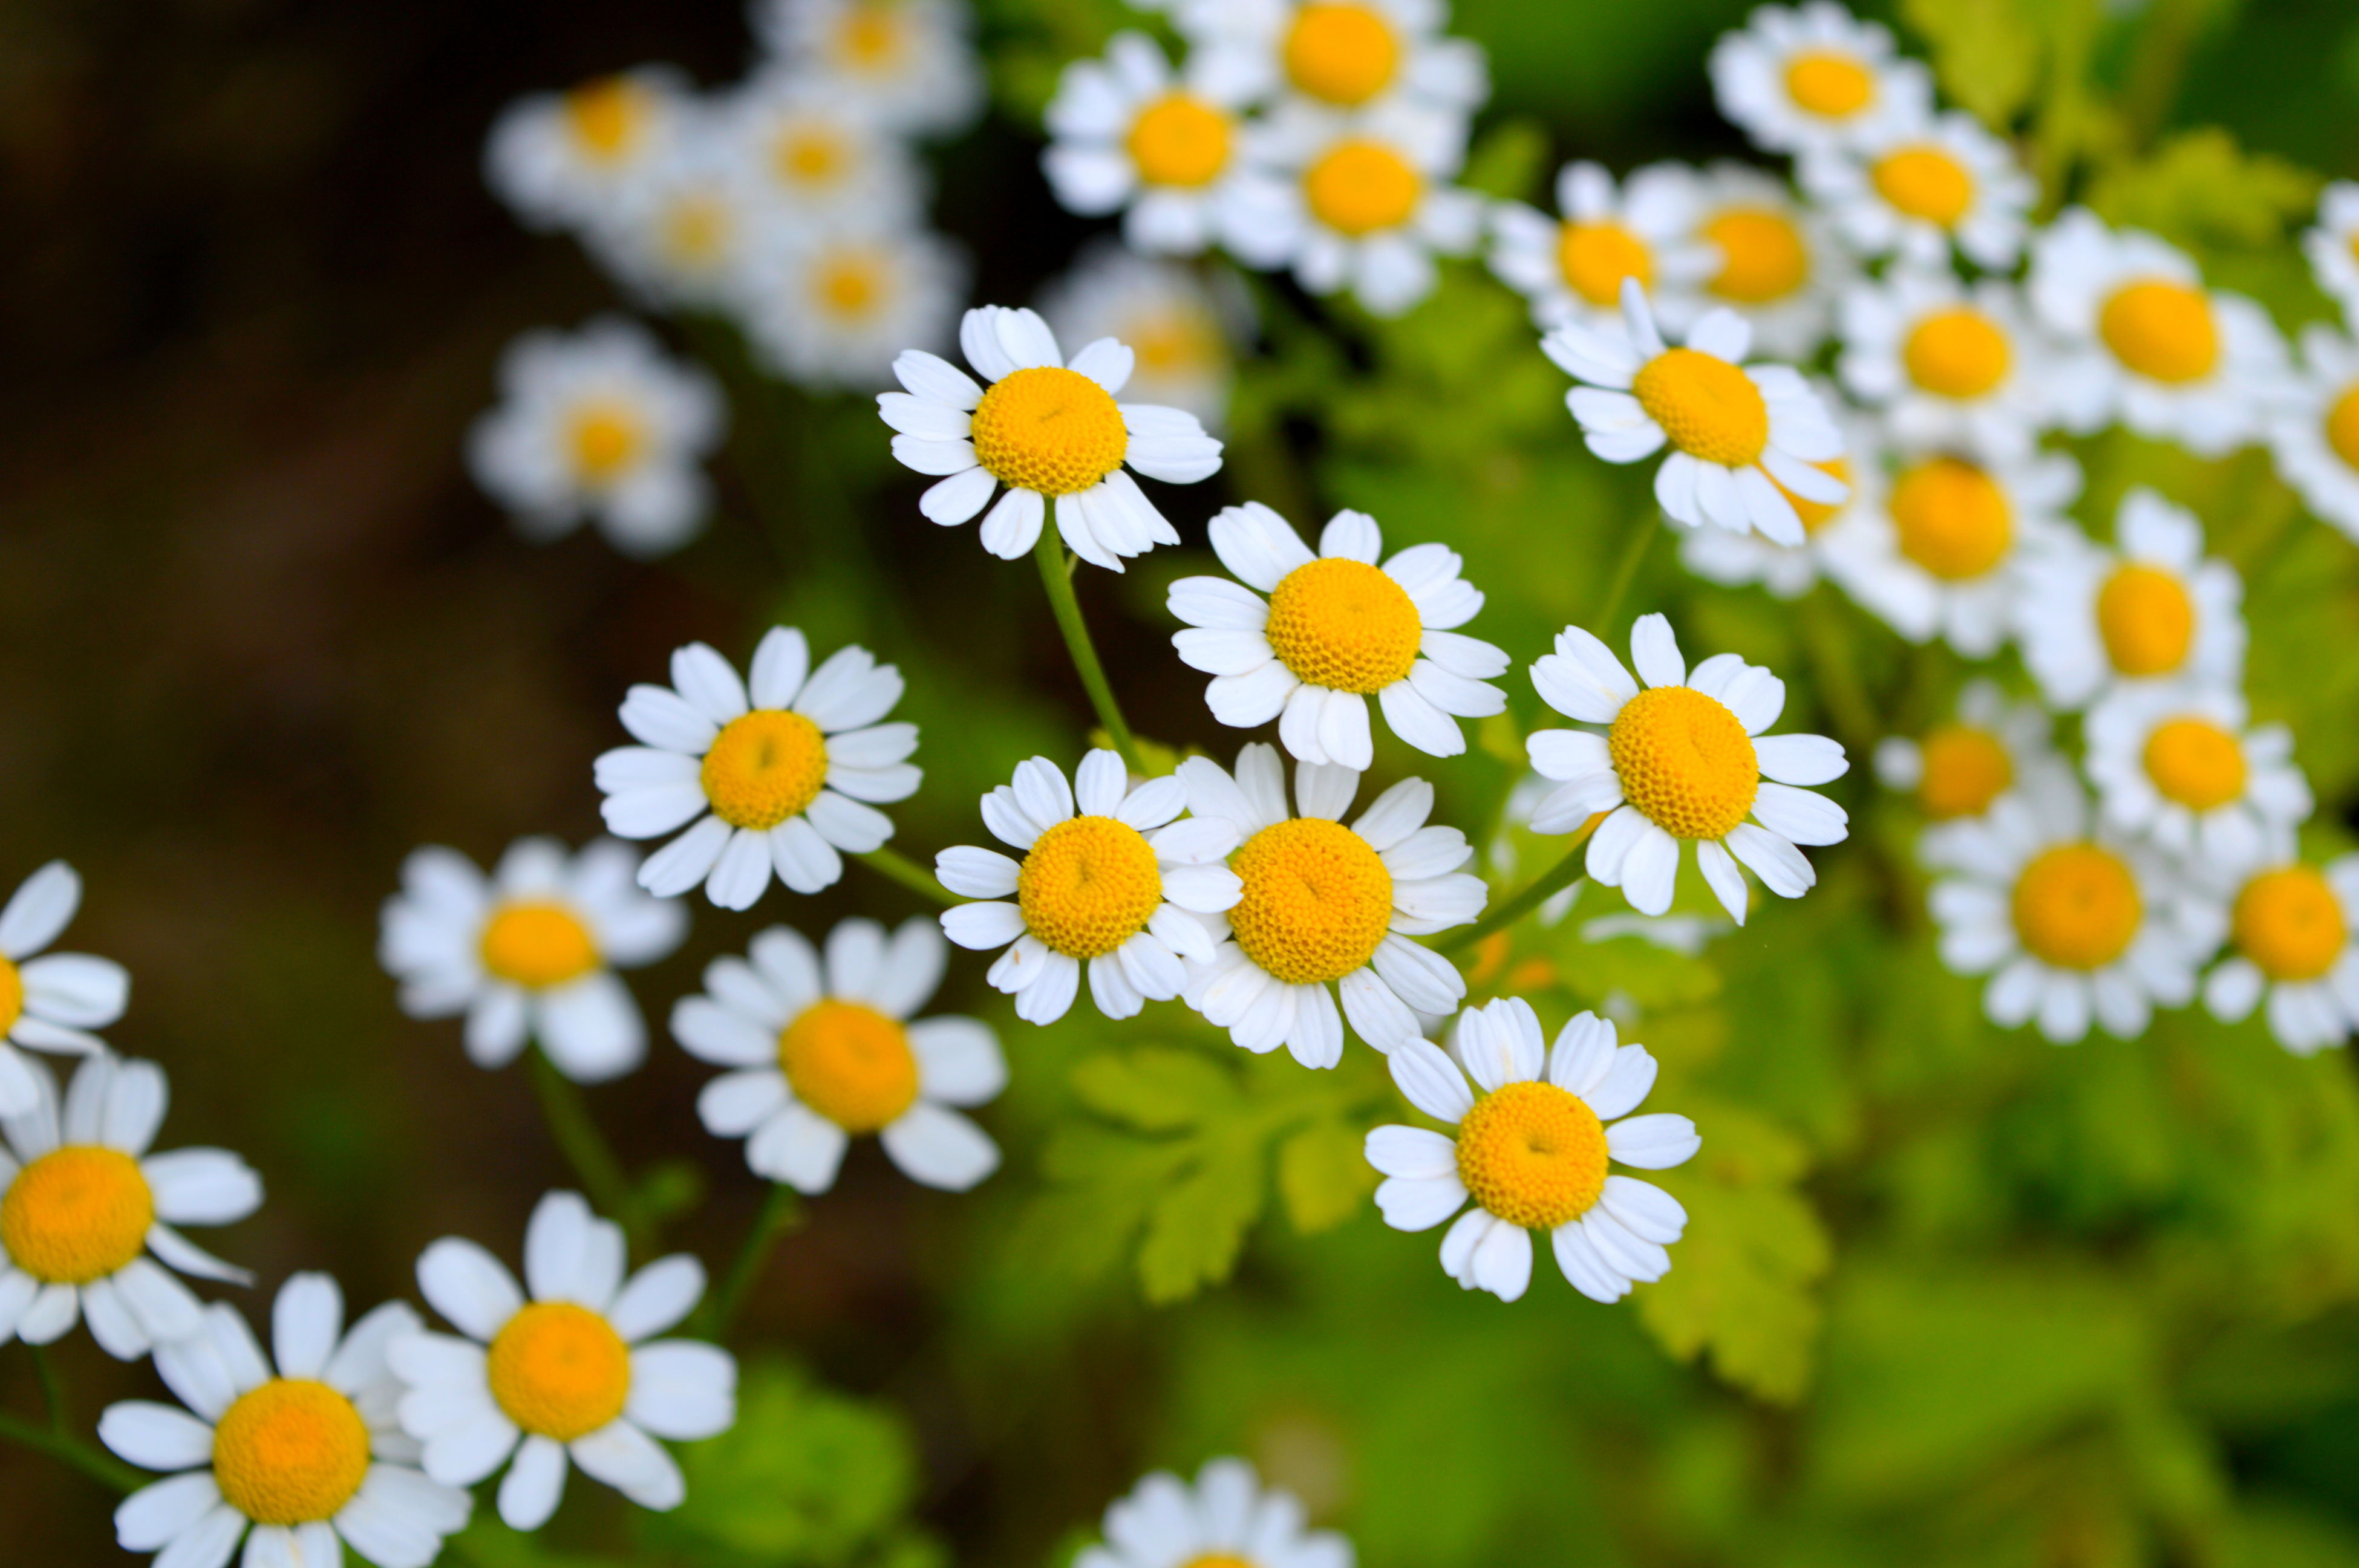 flower, freshness, petal, fragility, daisy, flower head, growth, beauty in nature, white color, blooming, nature, yellow, close-up, plant, focus on foreground, high angle view, selective focus, pollen, in bloom, field